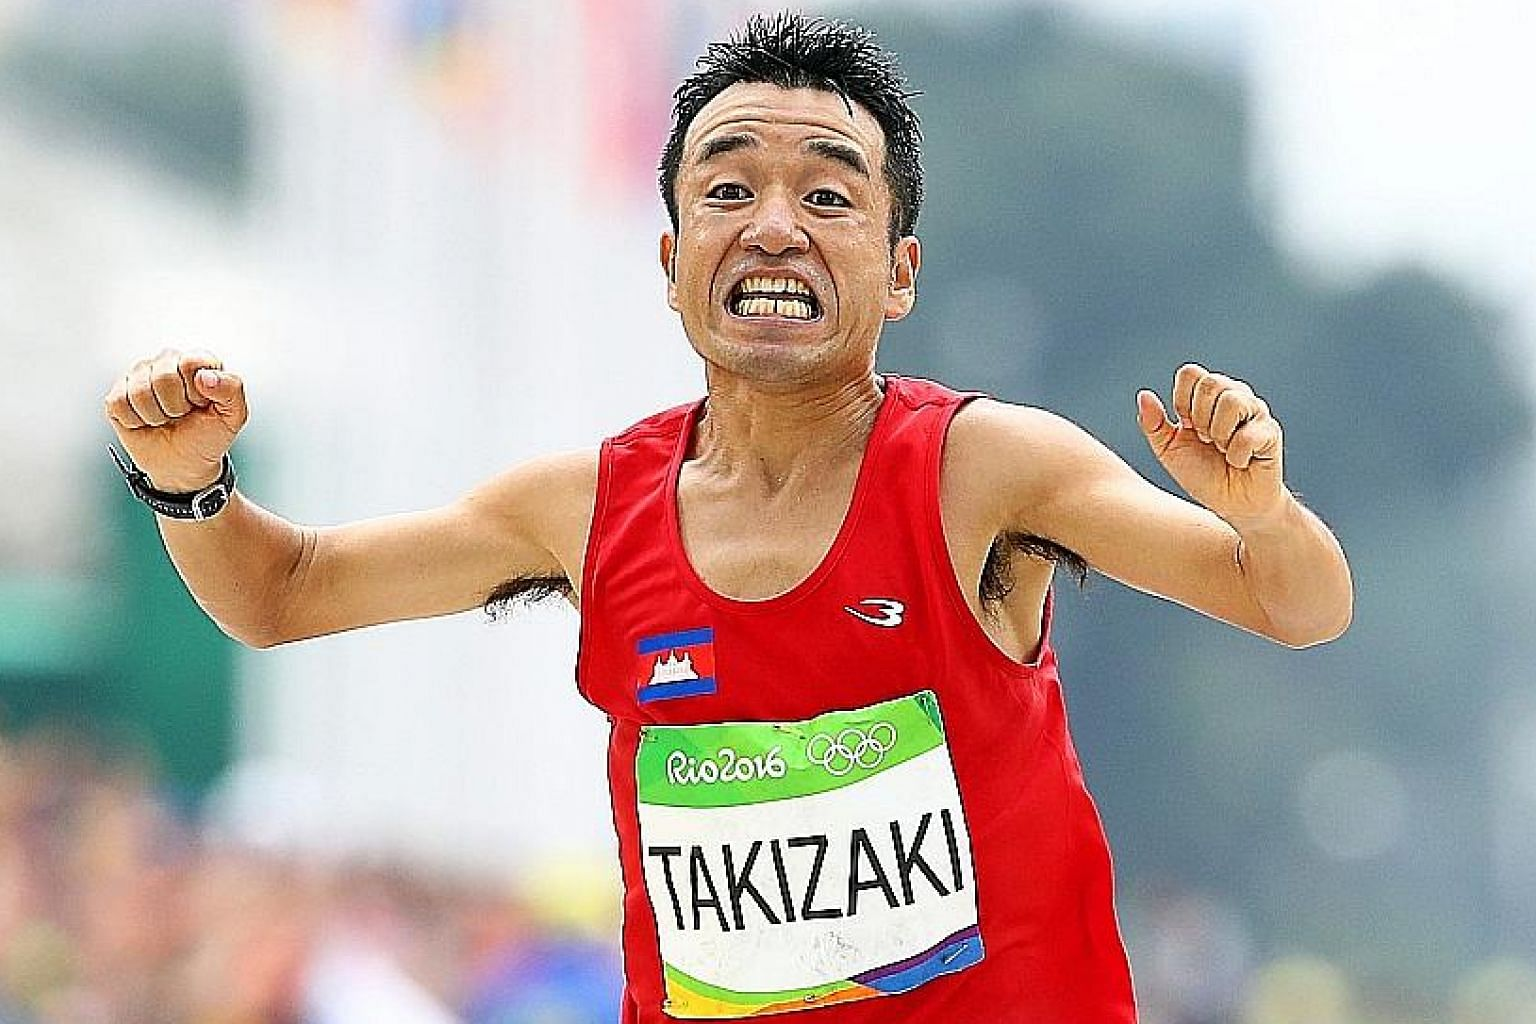 Kuniaki Takizaki of Cambodia was among the 12-man field in the marathon event at the 2015 SEA Games in Singapore. He is a plaintiff's witness in Ashley Liew's defamation suit against former teammate Soh Rui Yong. PHOTO: EPA-EFE